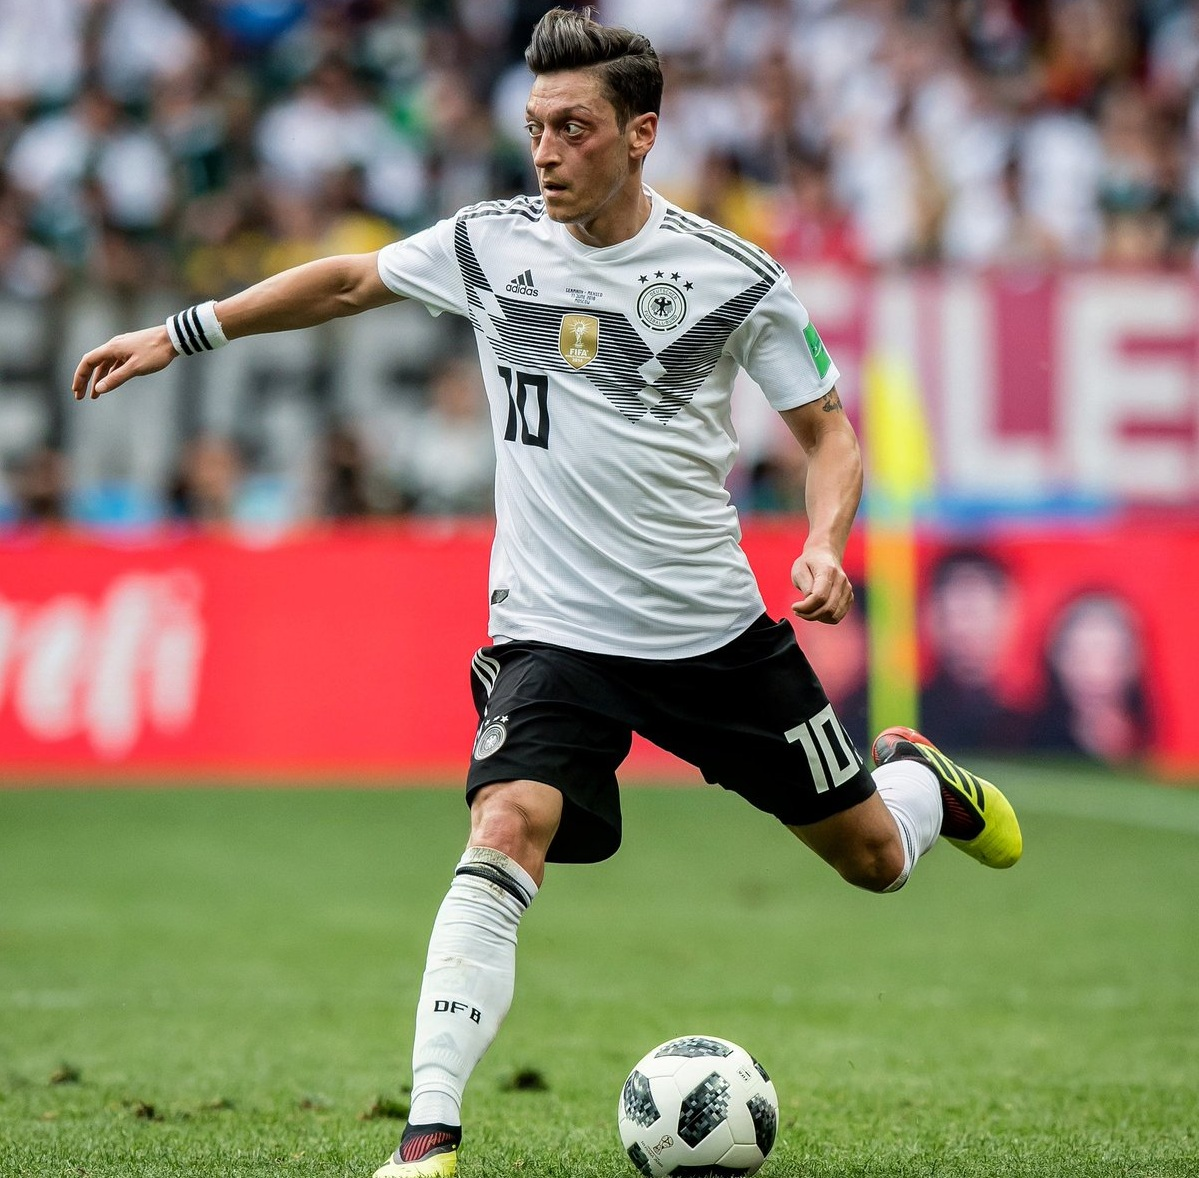 Germany, Mesut Özil, hangs up, boots, racism, disrespect, NewsMobile, Sports, Retirement, Football